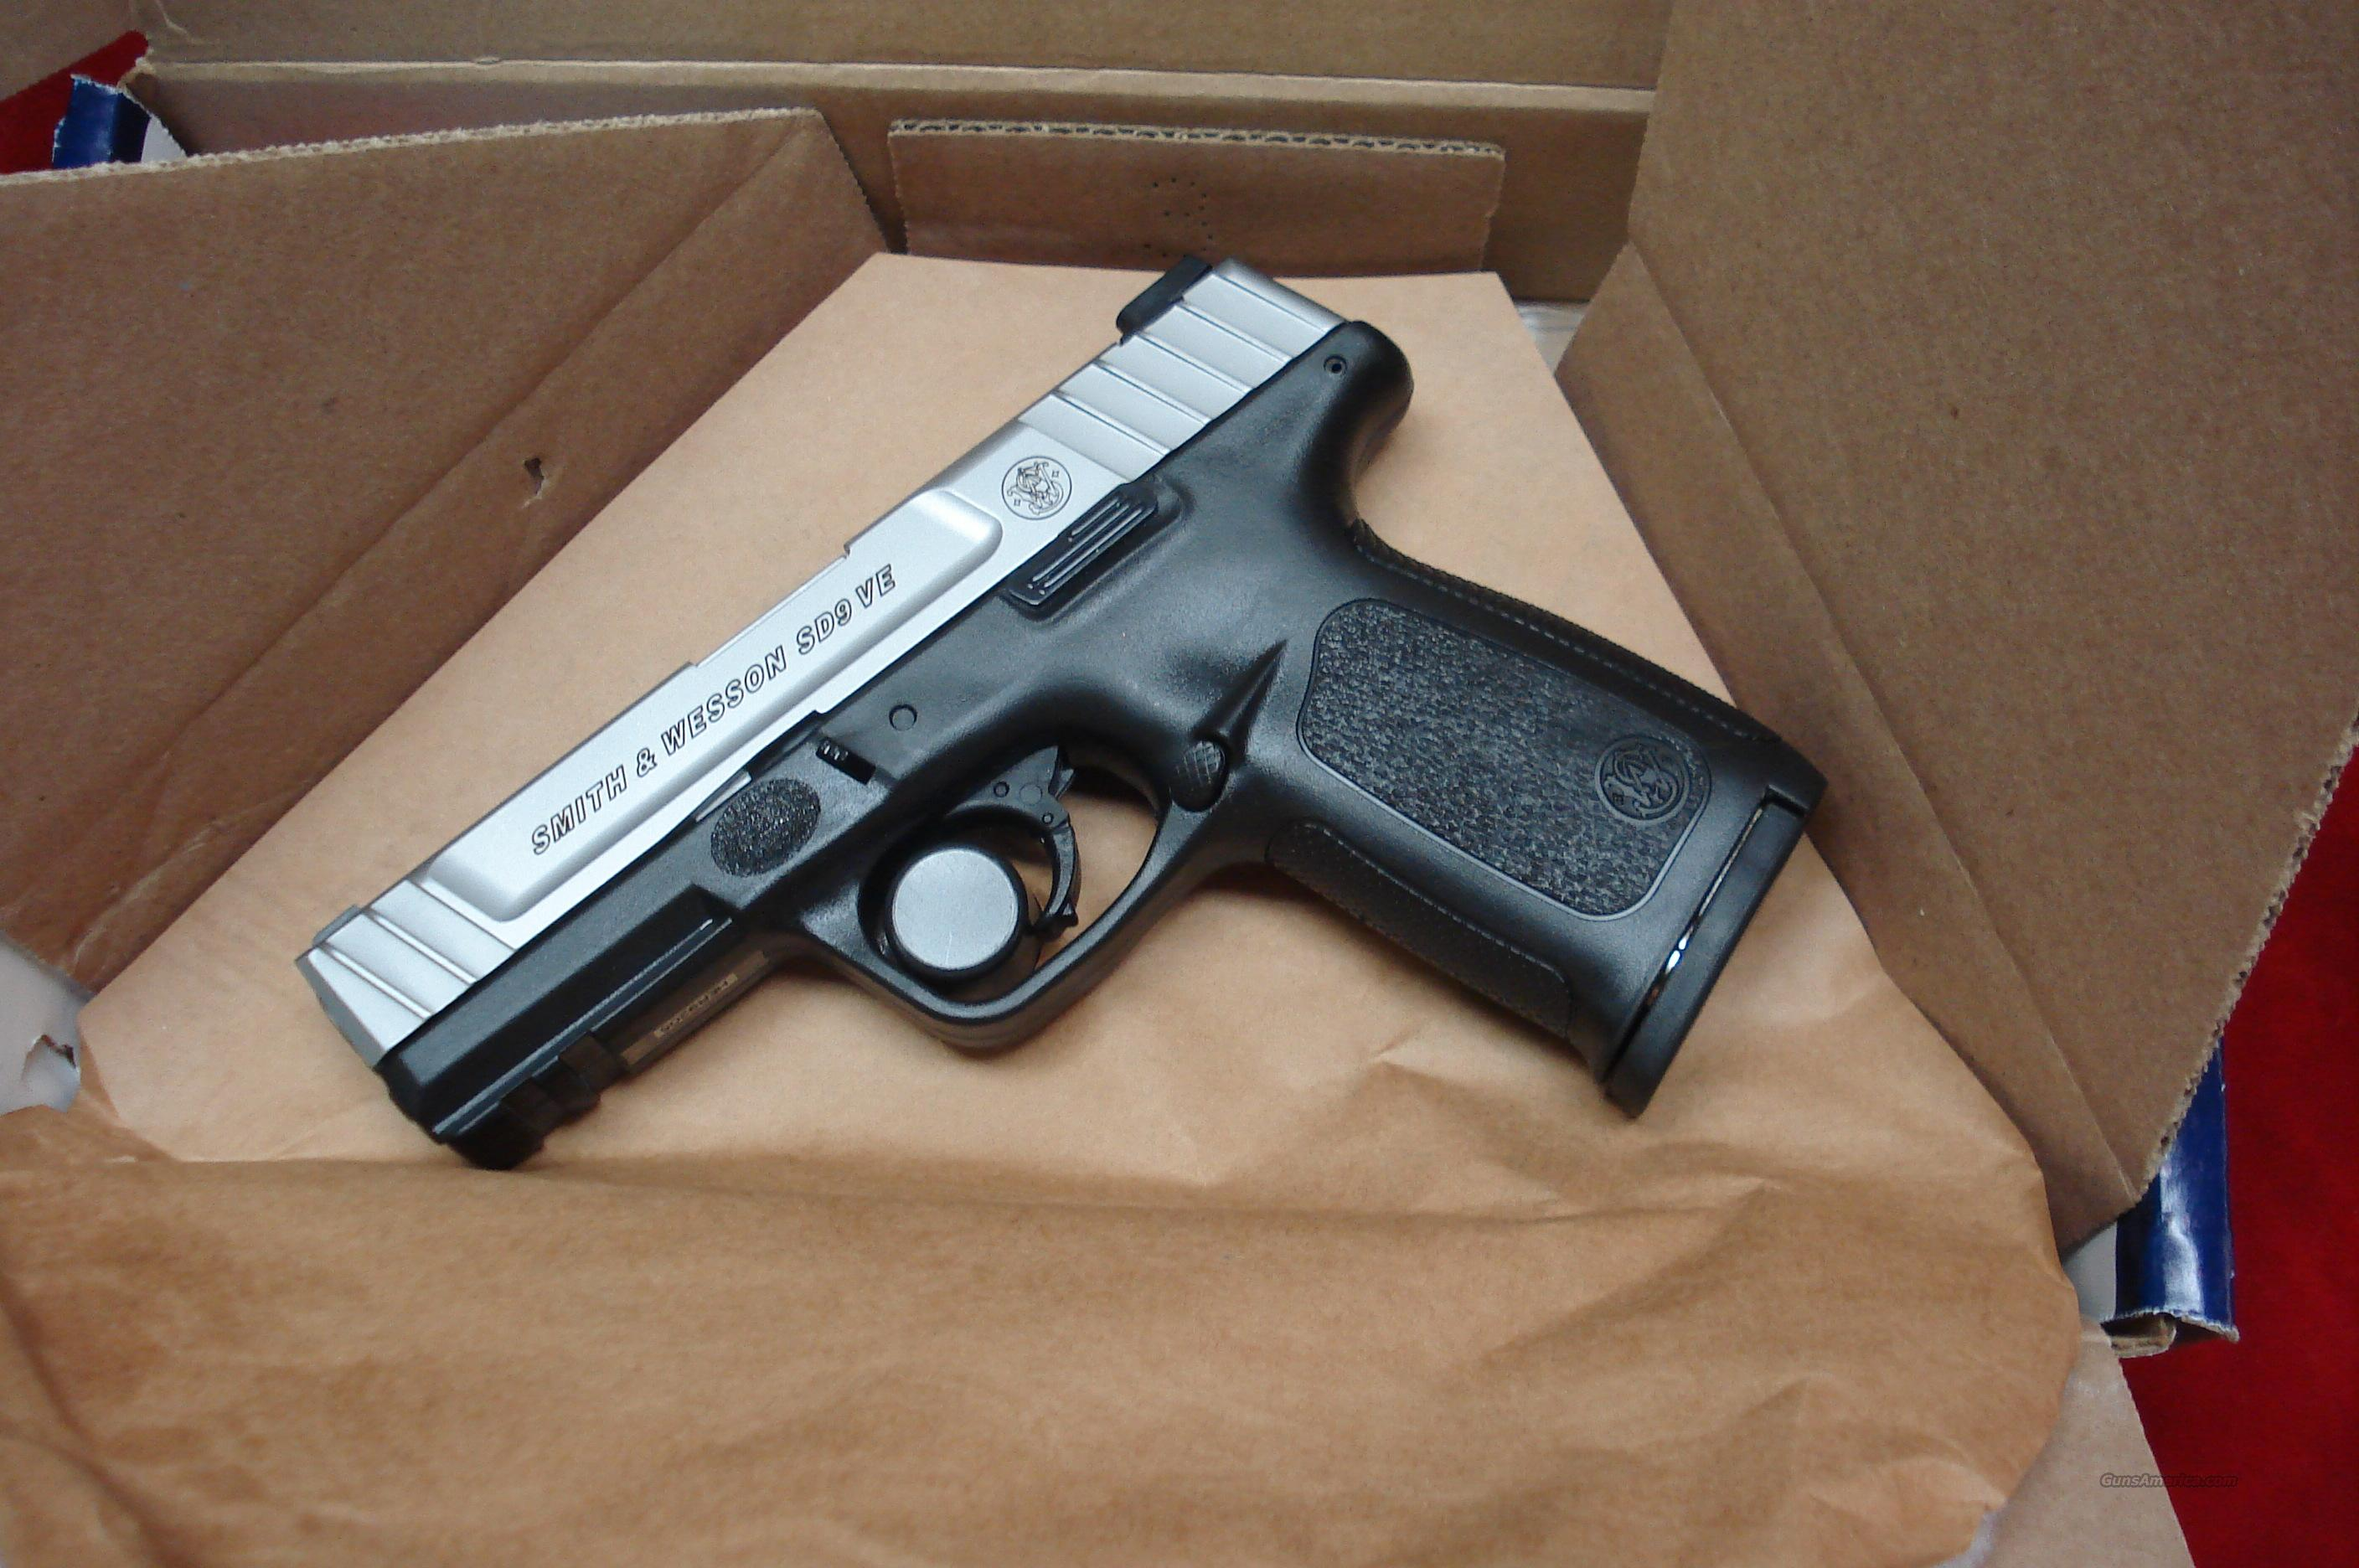 SMITH AND WESSON SD9VE (SELF DEFENSE PISTOL) 9MM  NEW   Guns > Pistols > Smith & Wesson Pistols - Autos > Polymer Frame